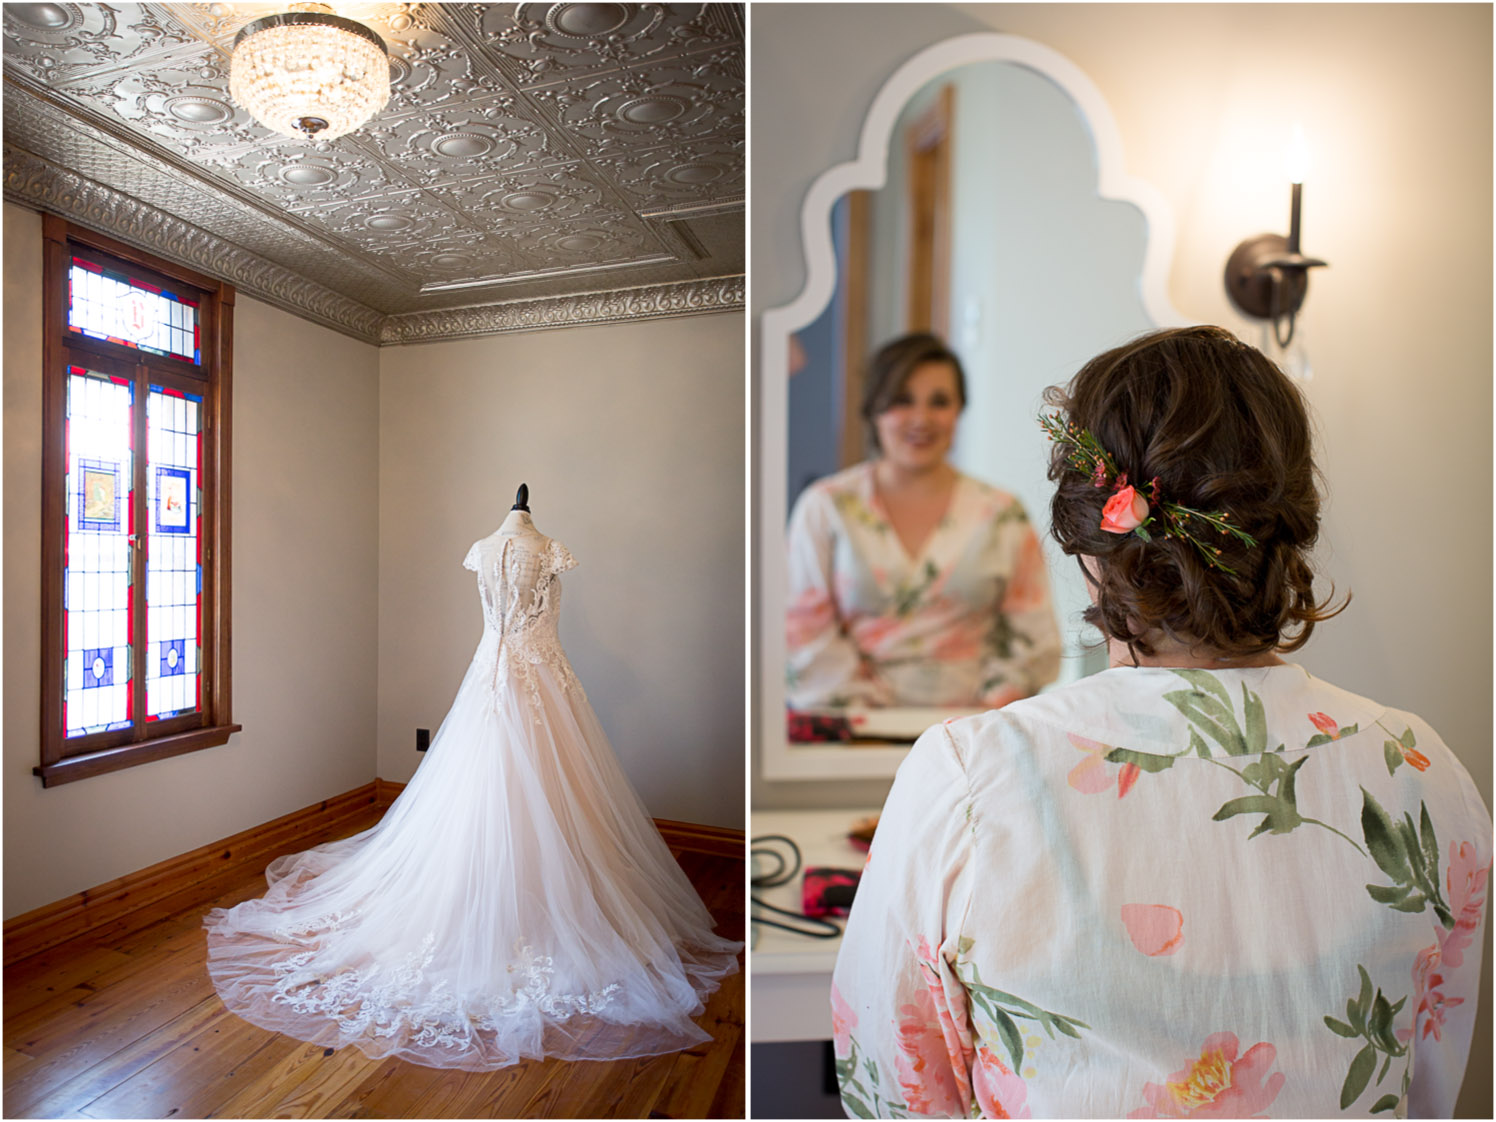 07-hotel-broz-new-prague-mn-minnesota-wedding-venue-photographer-styled-shoot-getting-ready-room-stained-glass-windows-lace-bridal-dress-gown-victorian-themes-mahonen-photography.jpg